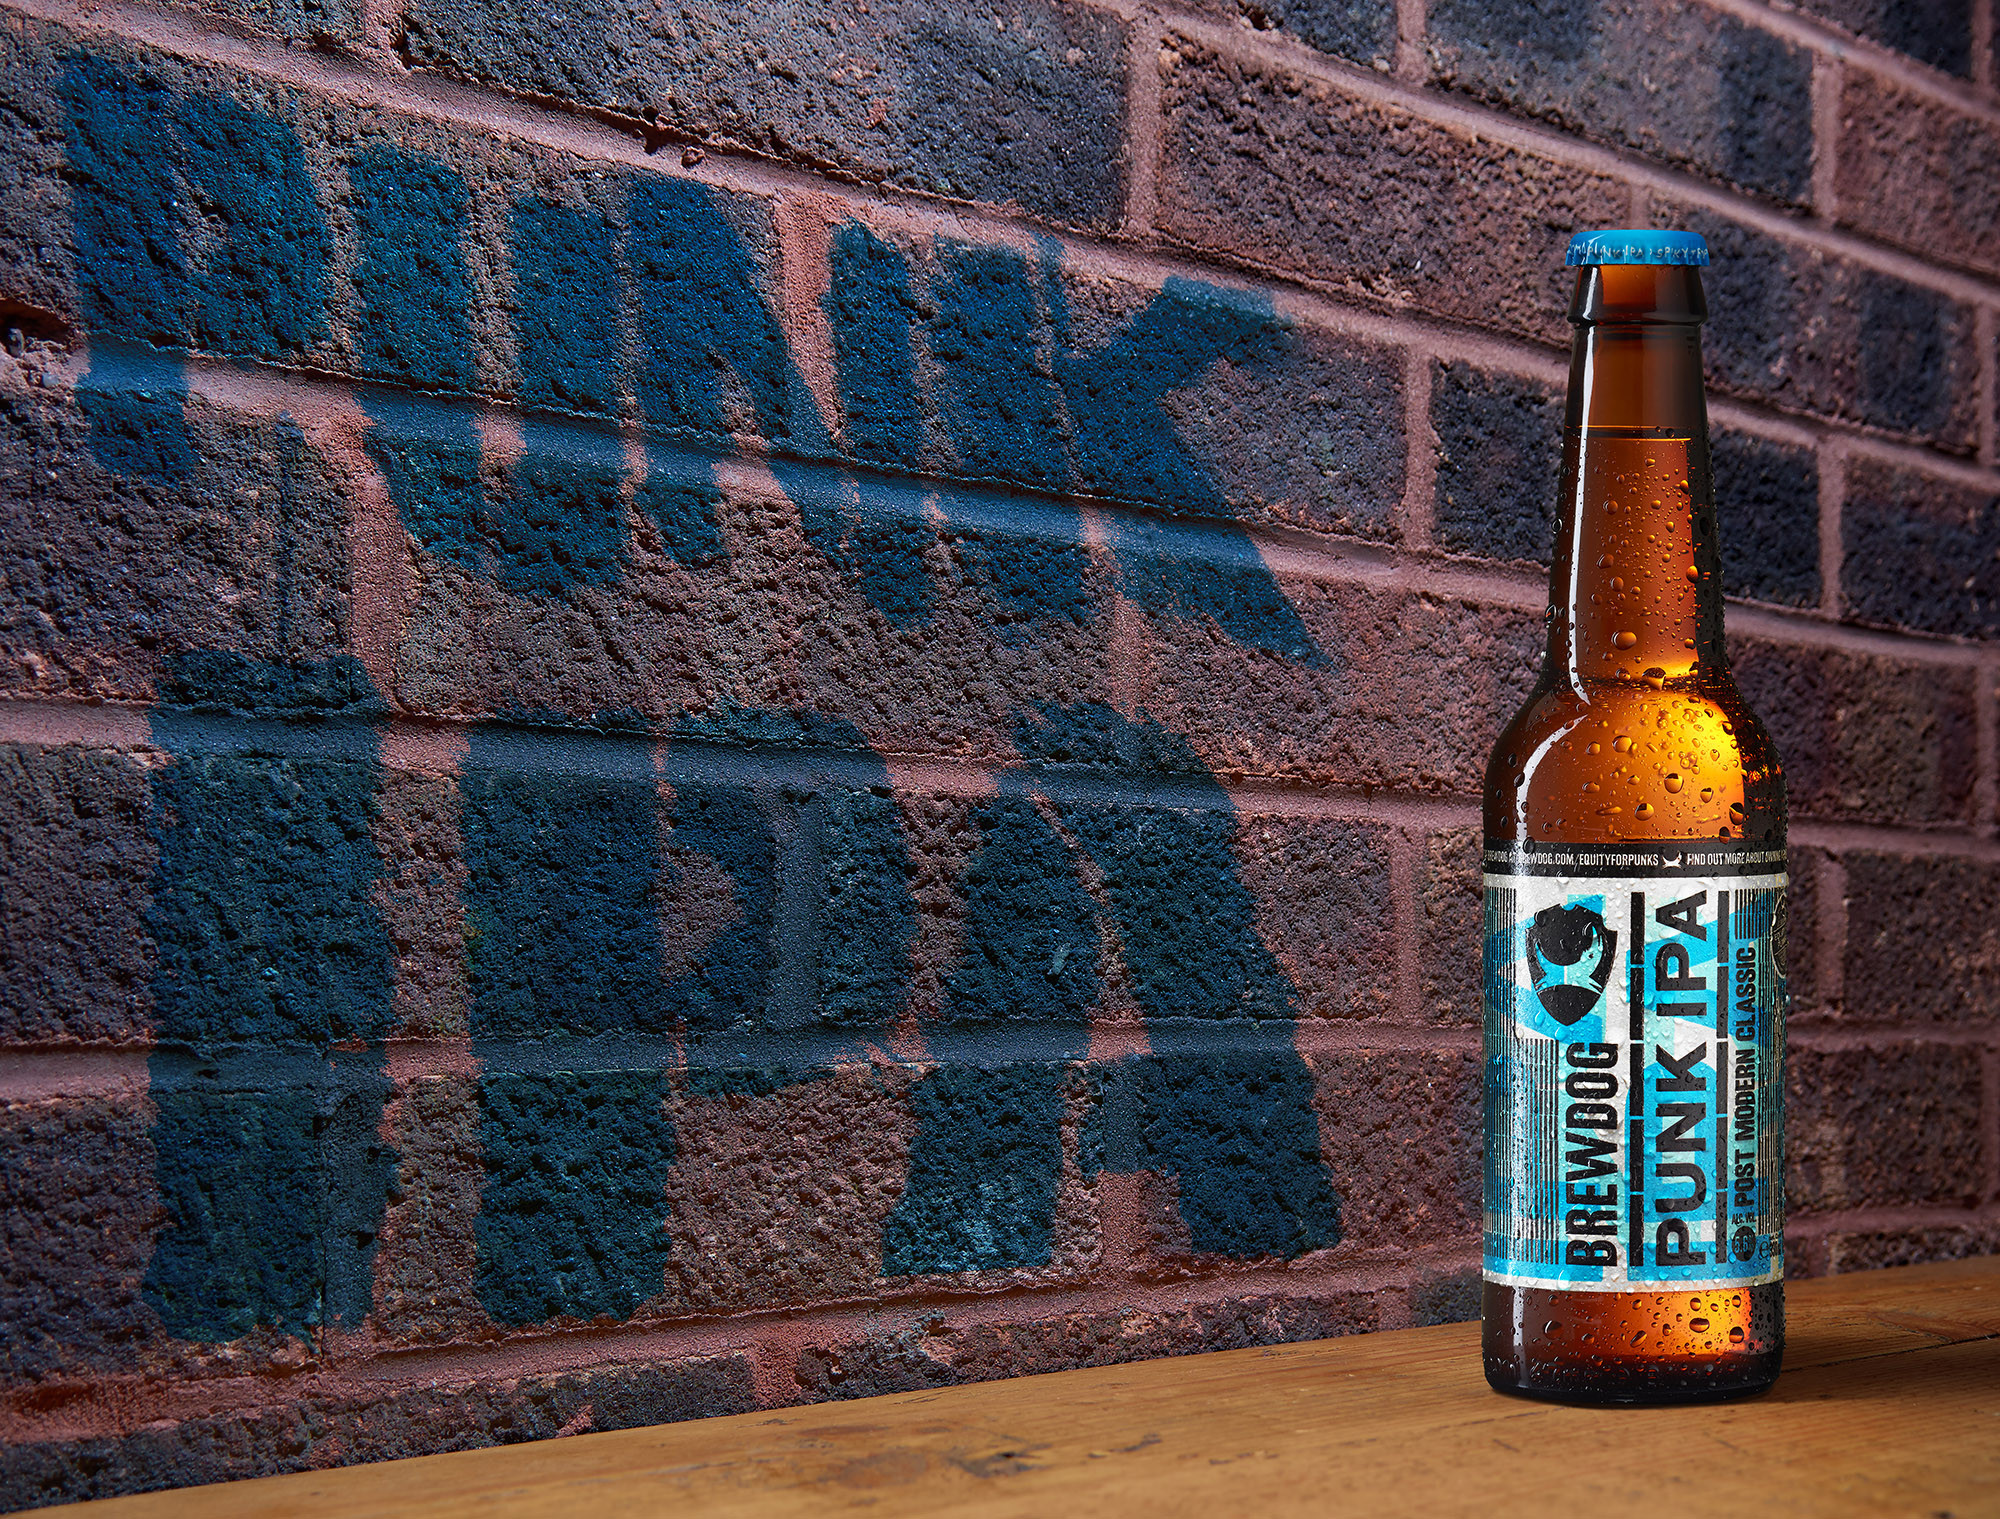 Ian Knaggs Commercial Product Photographer - Brewdog Punk IPA